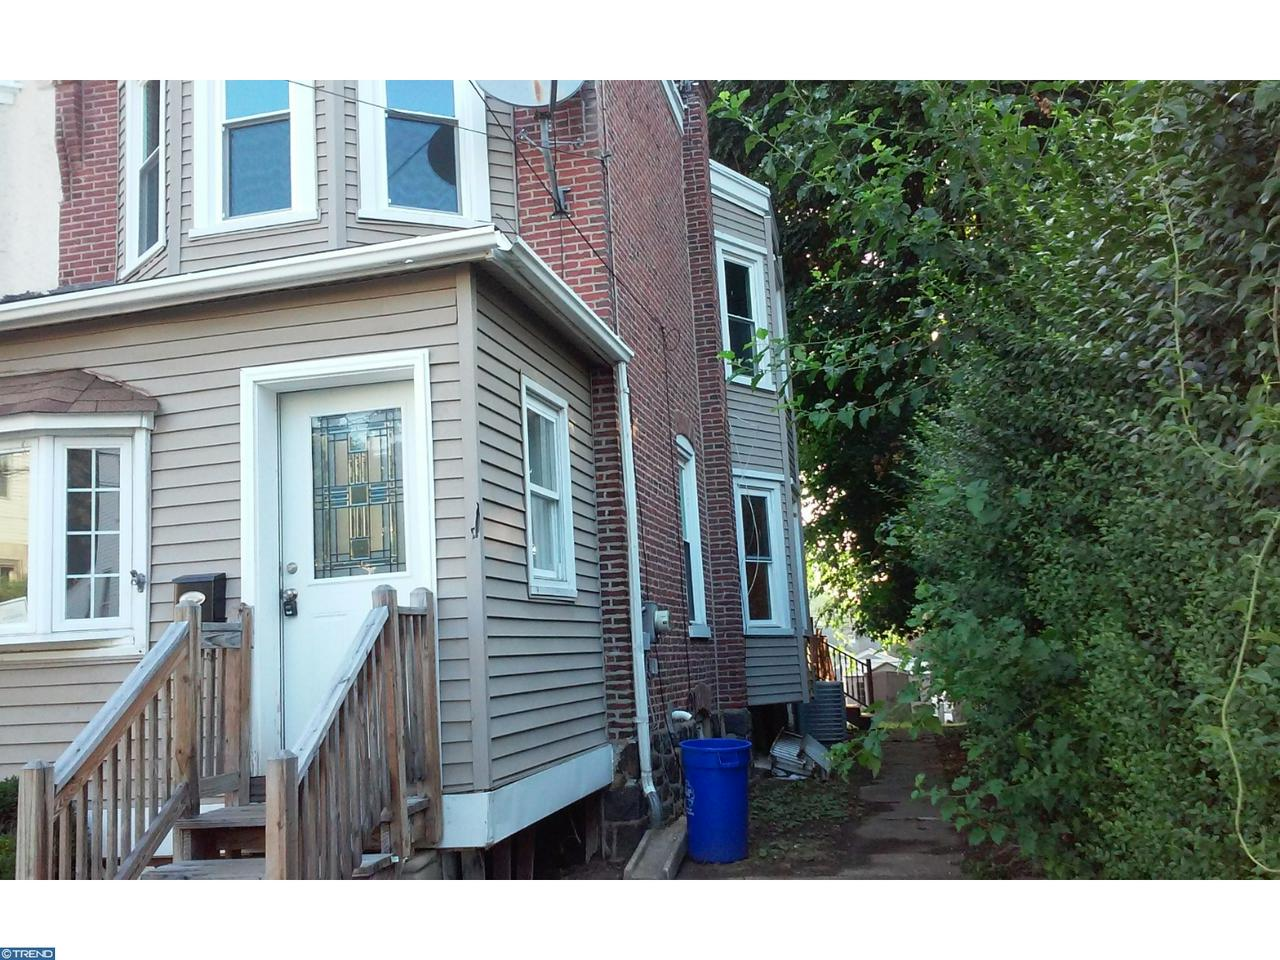 37 MAPLE TERRACE, CLIFTON HEIGHTS, PA 19018